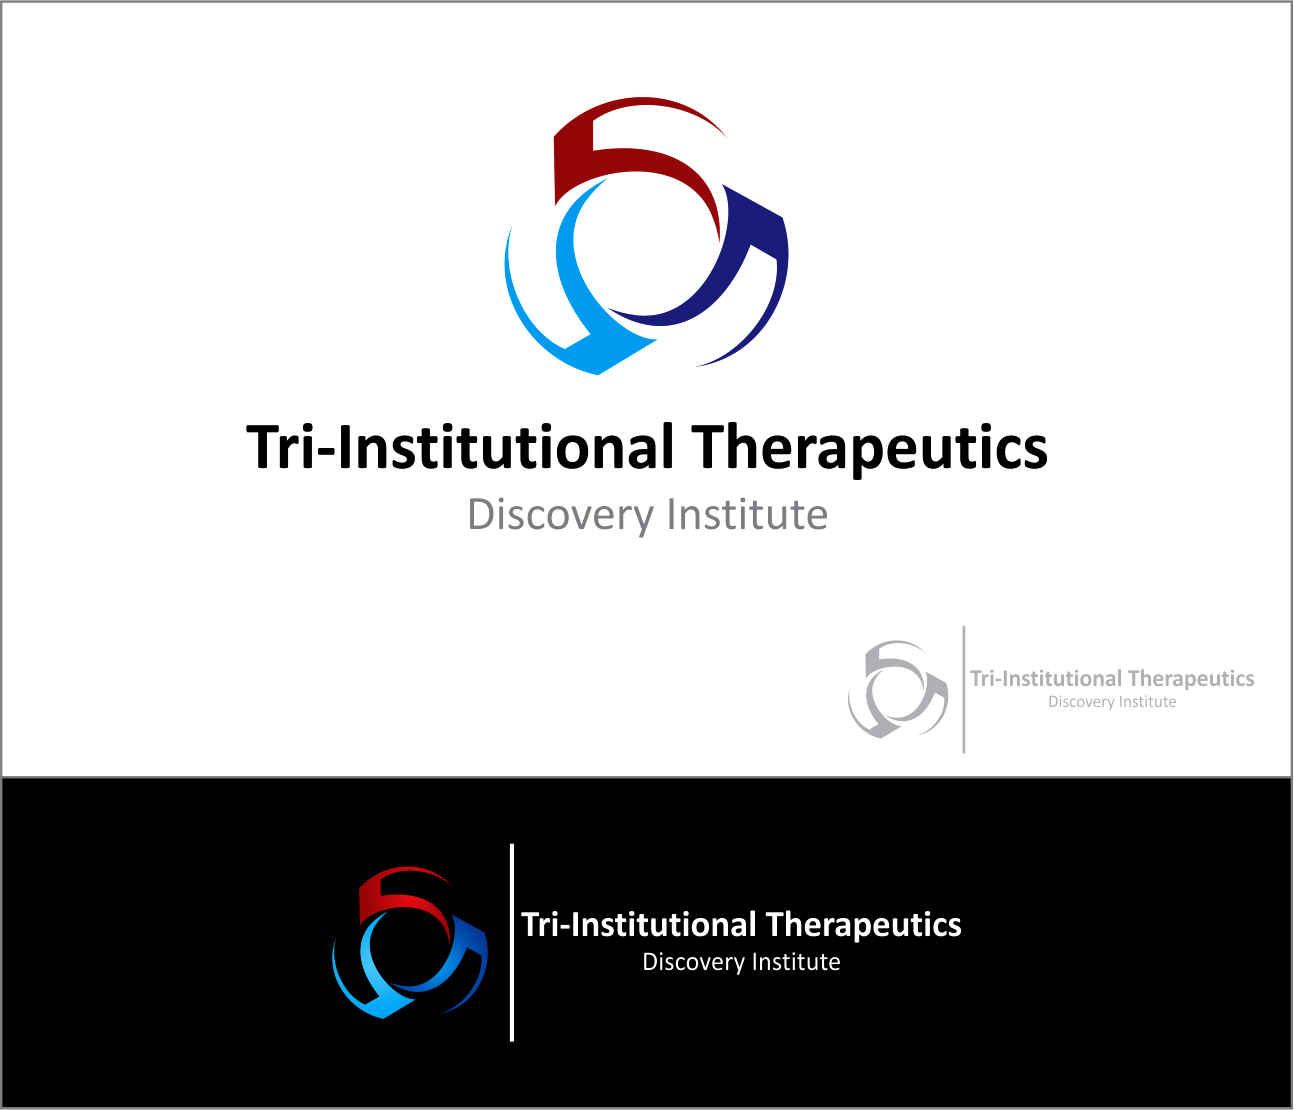 Logo Design by Armada Jamaluddin - Entry No. 101 in the Logo Design Contest Inspiring Logo Design for Tri-Institutional Therapeutics Discovery Institute.